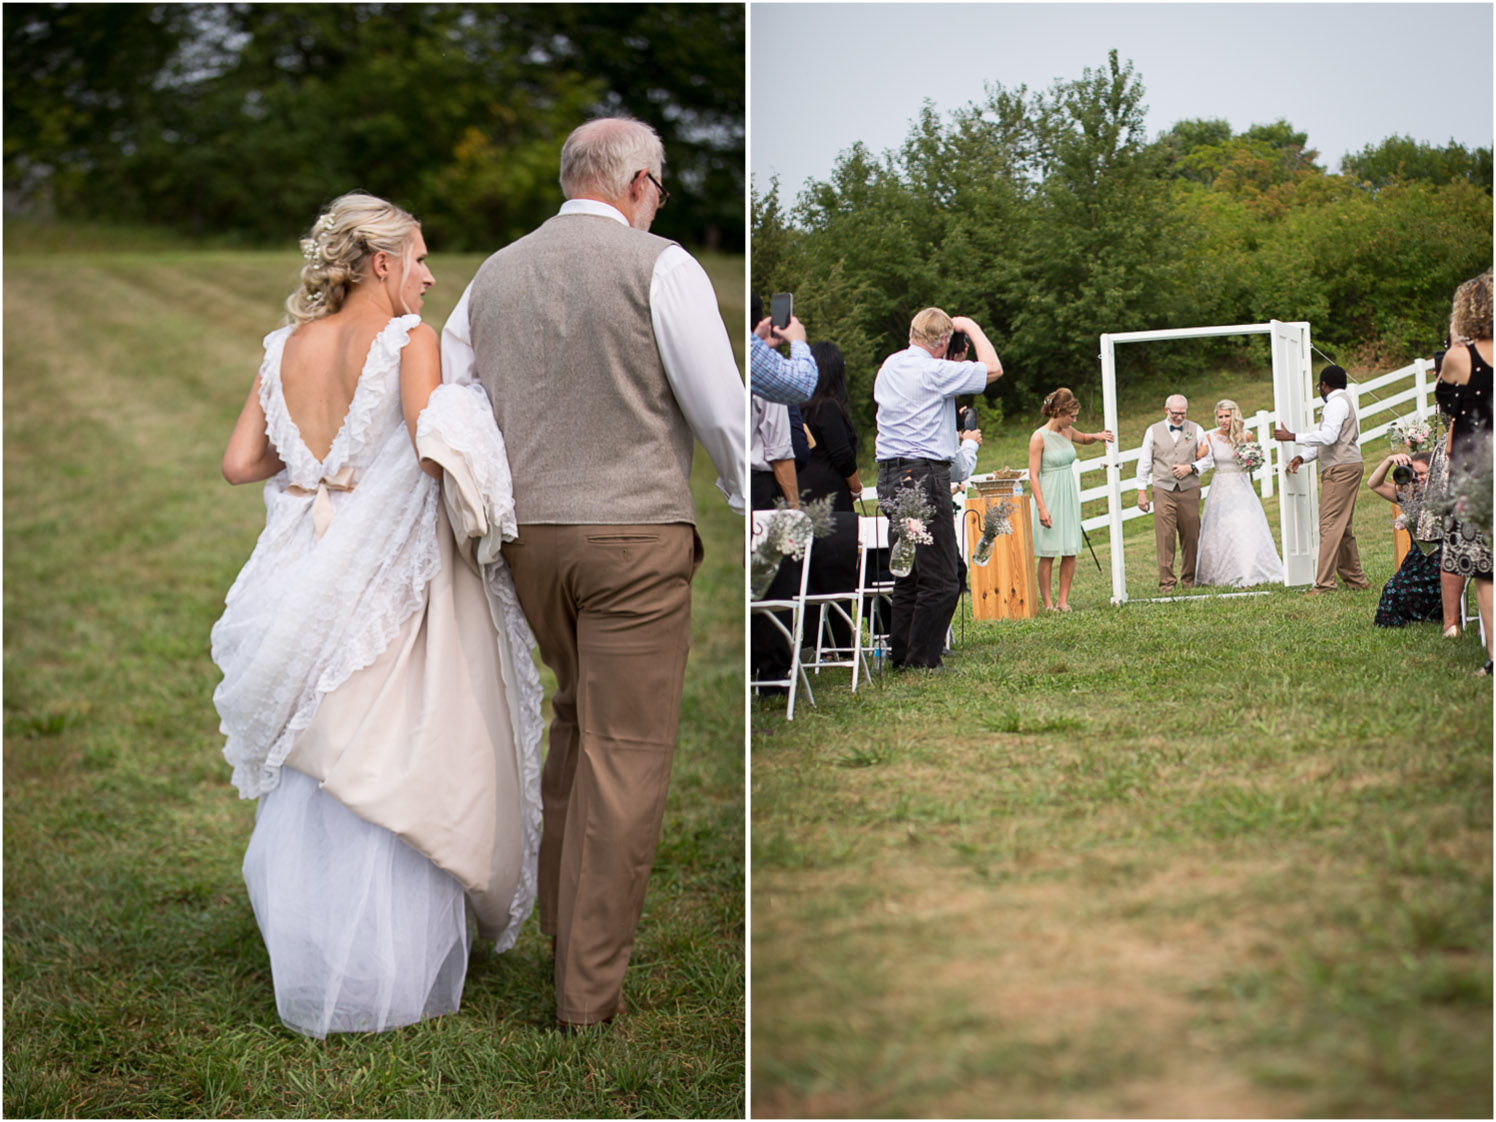 14-dellwood-barn-weddings-minnesota-wedding-photographer-outdoor-summer-ceremony-grassy-field-here-comes-the-bride-father-daughter-antique-doors-mahonen-photography.jpg